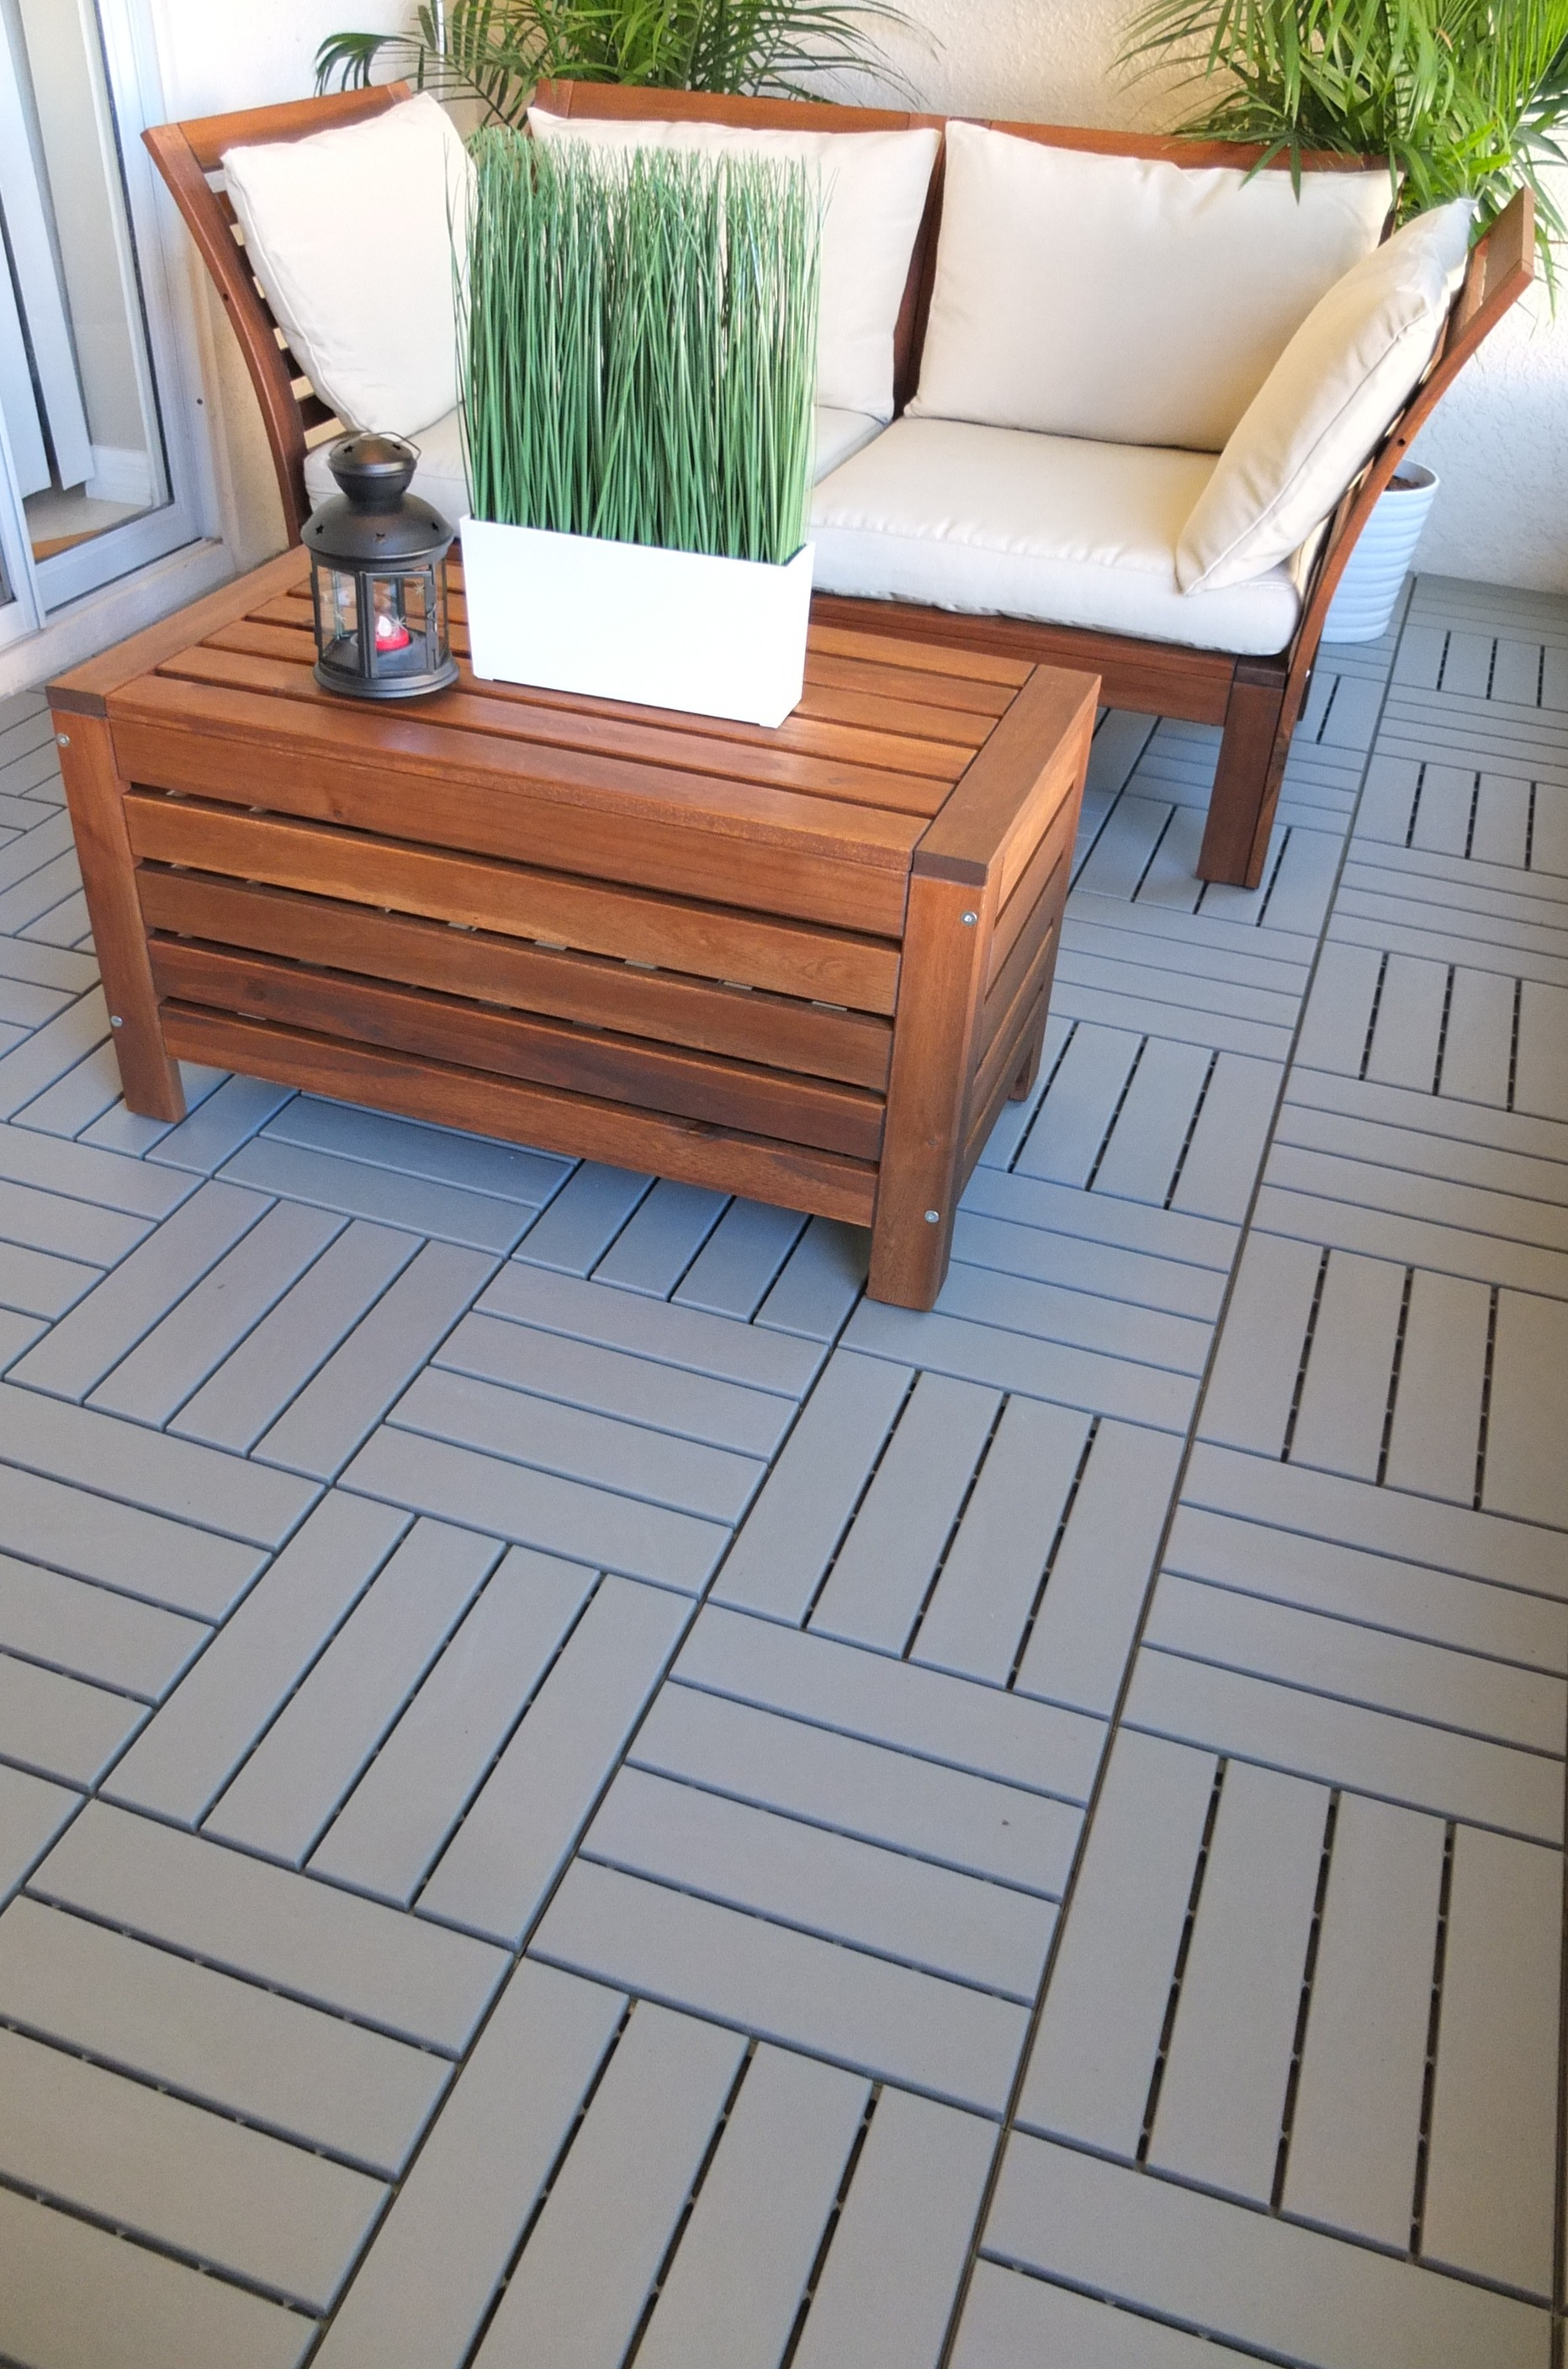 outdoor diy guide buyers and under spaces buyer patio how floors rooms to flooring foot s